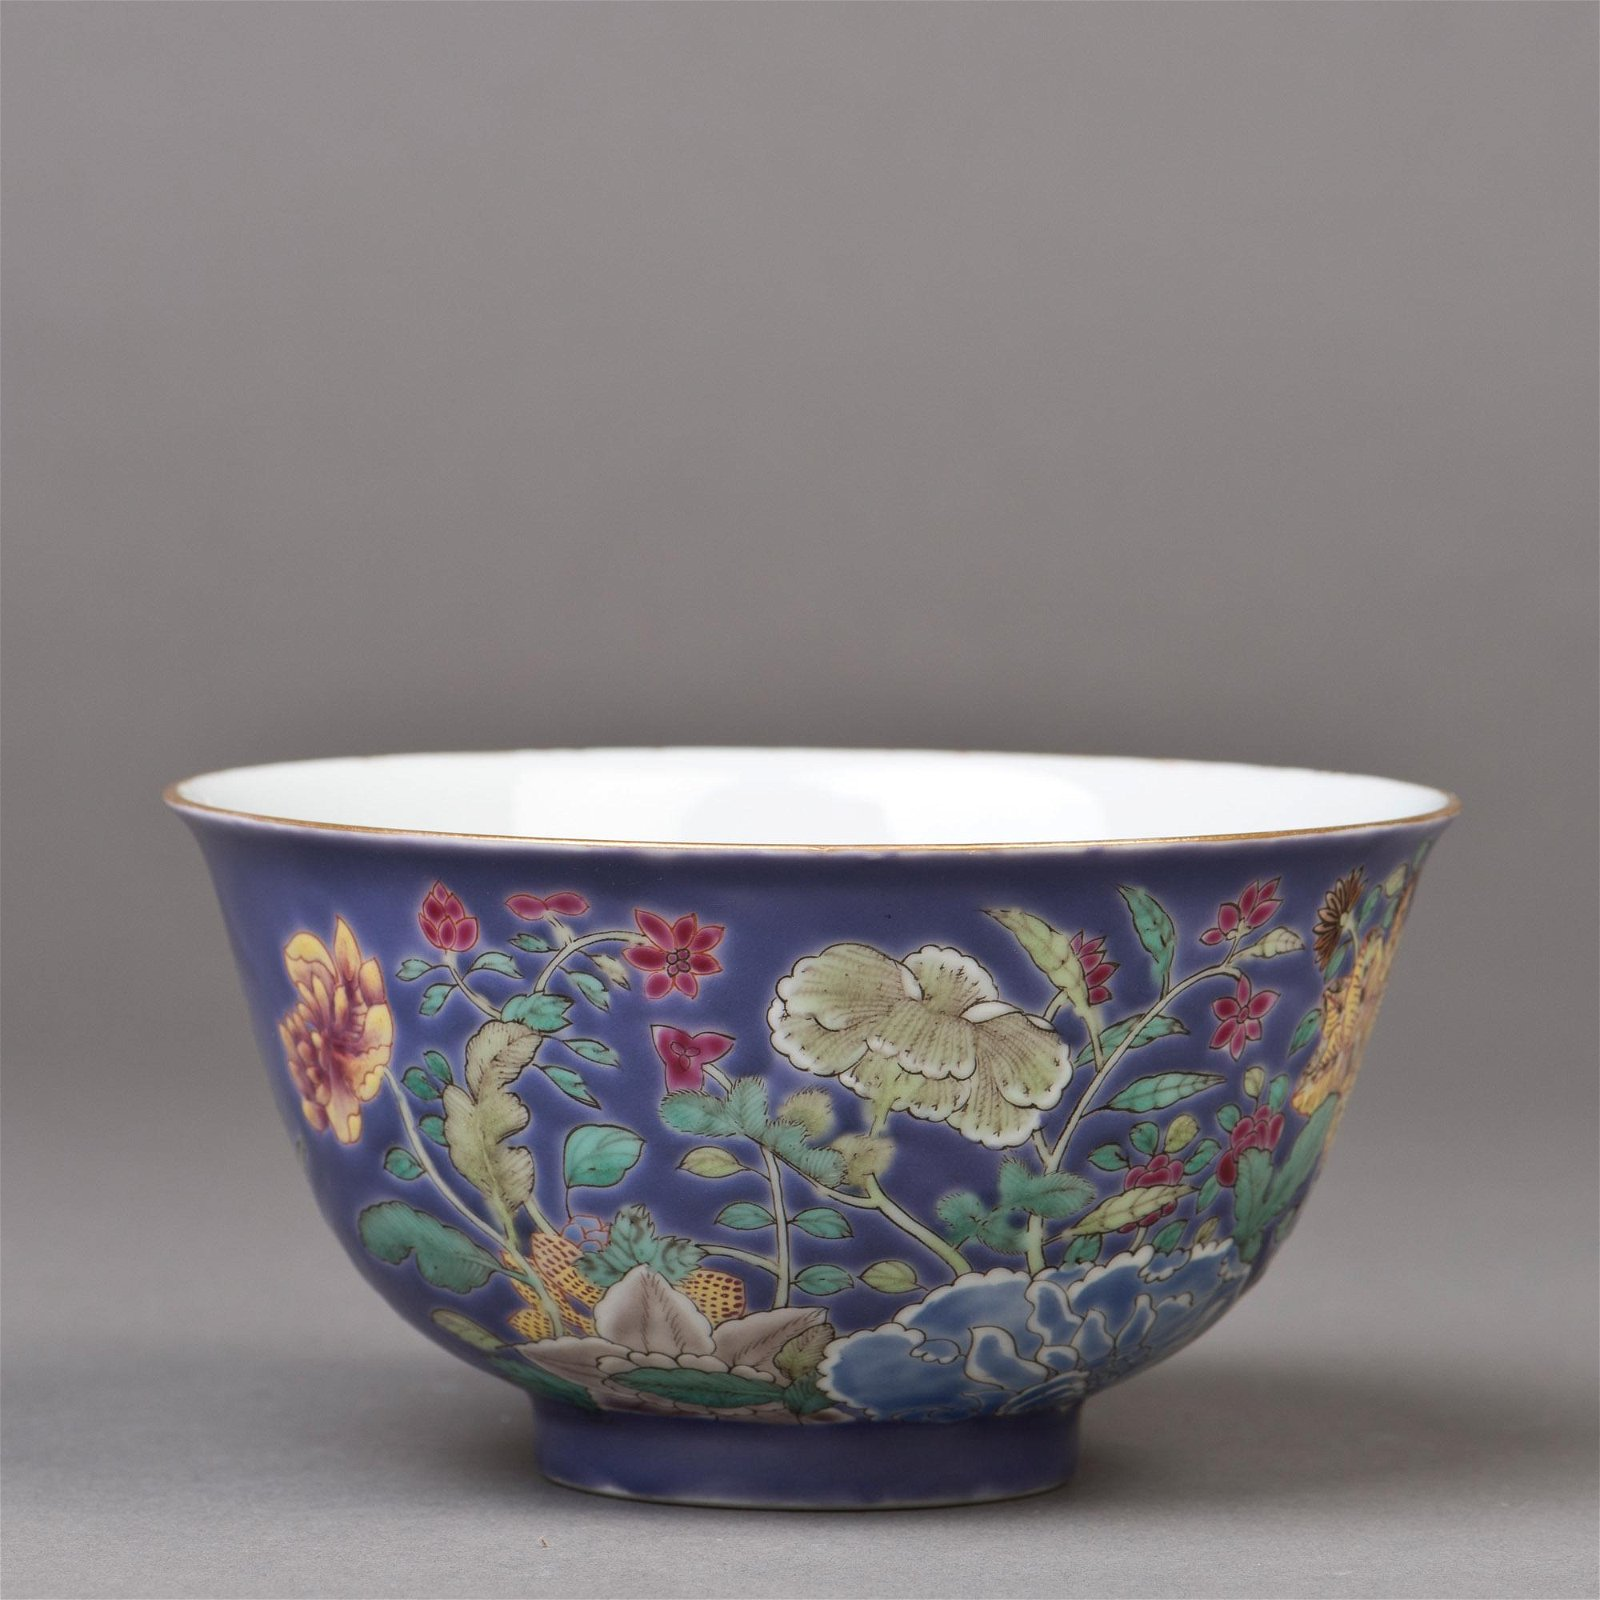 A PURPLE-GLAZED FAMILLE ROSE PORCELAIN BOWL